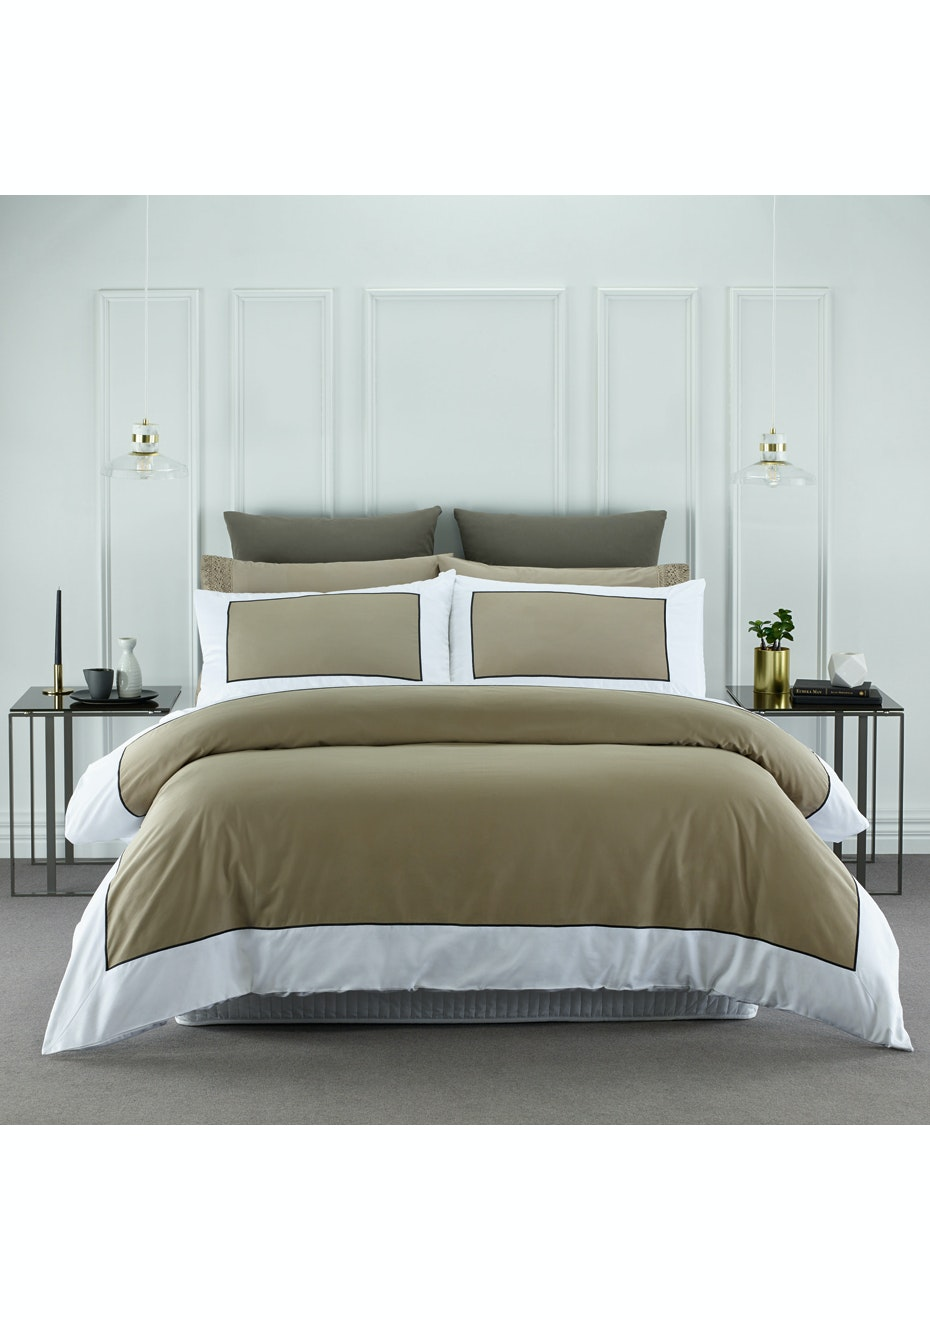 Style & Co 1000 Thread count Egyptian Cotton Hotel Collection Ascot Quilt Cover sets Queen Linen